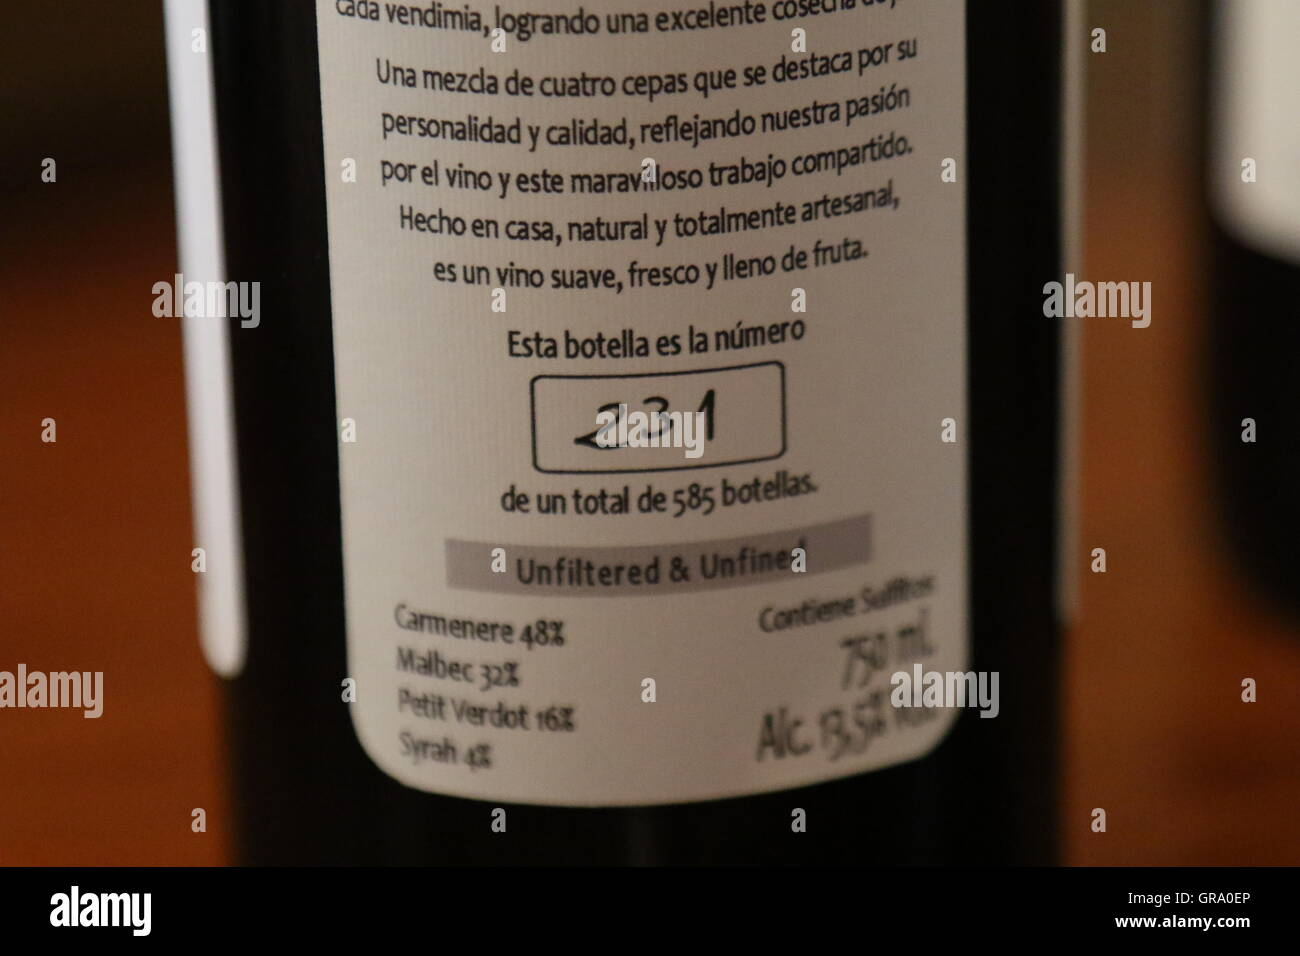 Label on a bottle of handcrafted limited production wine at Hoops by Caviahue Wines, Maipo Valley, Chile - Stock Image